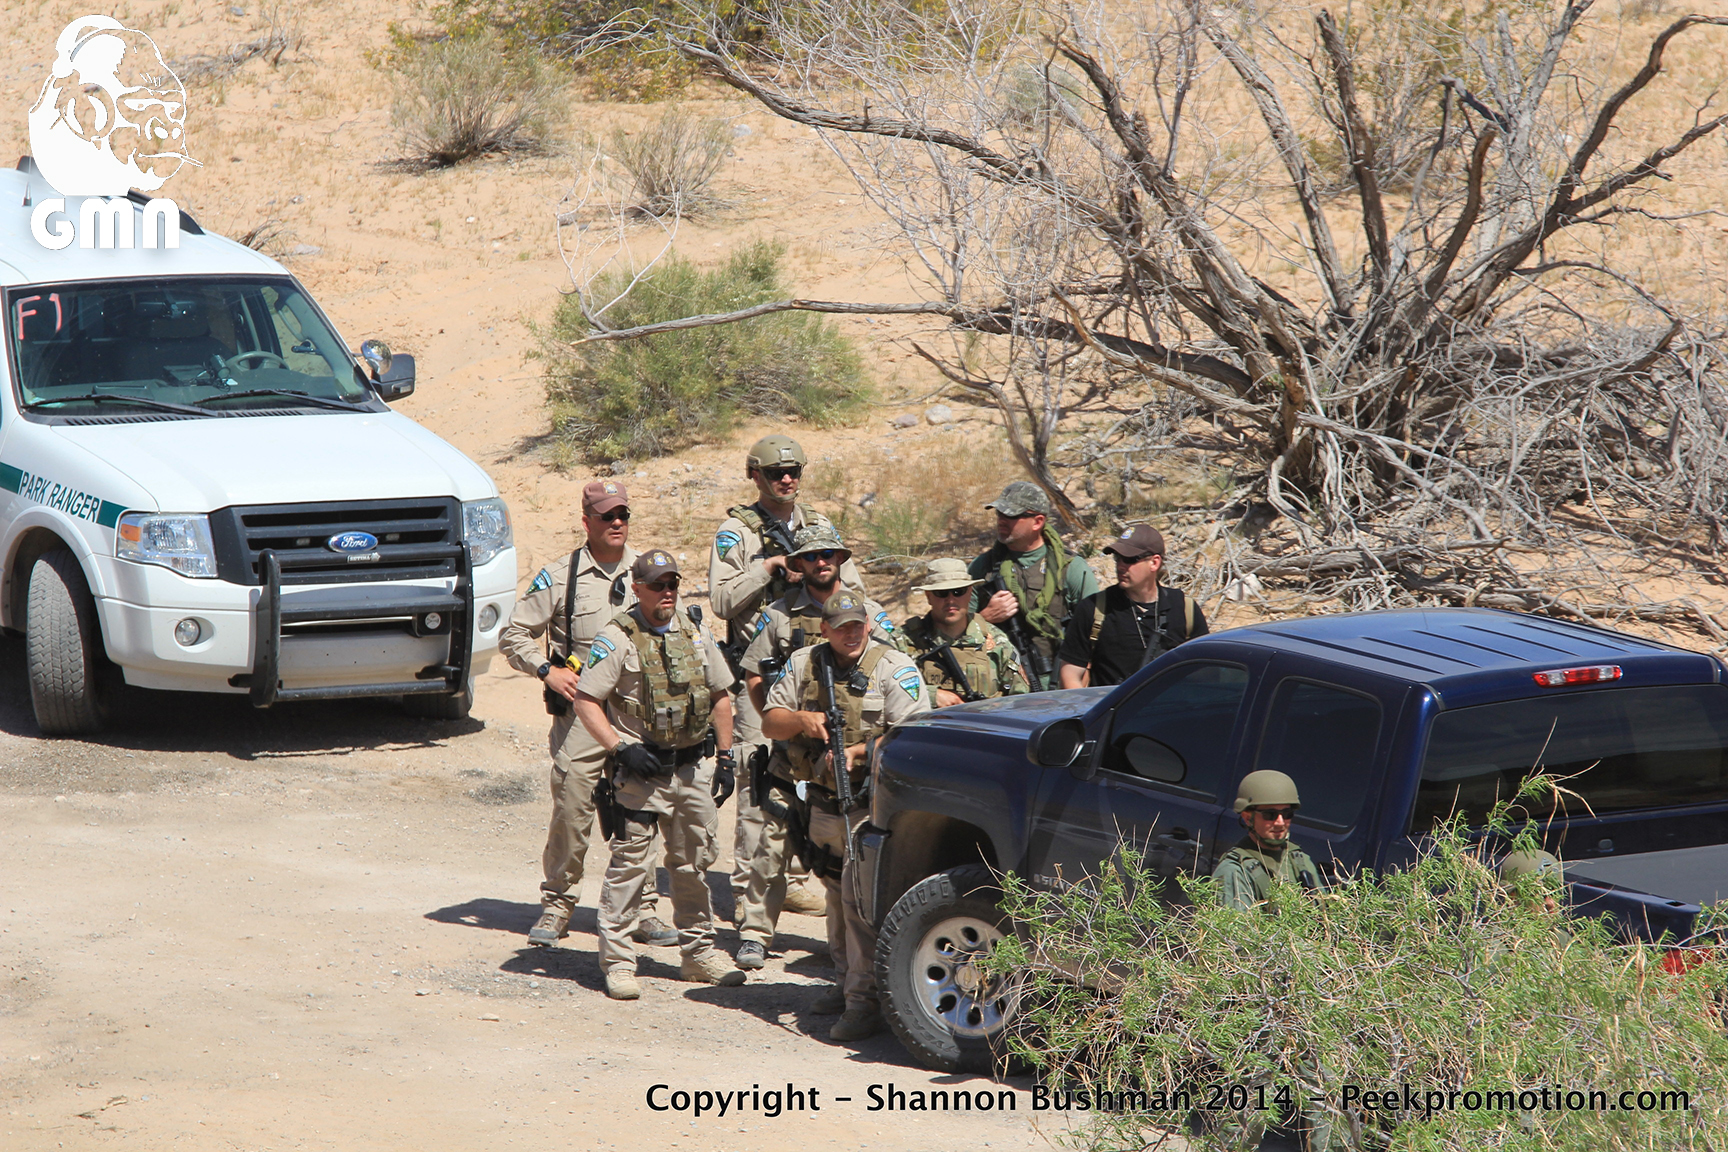 21WIREp-Bundy-Fed-Standoff-April-12-2014-Copyright-GMN